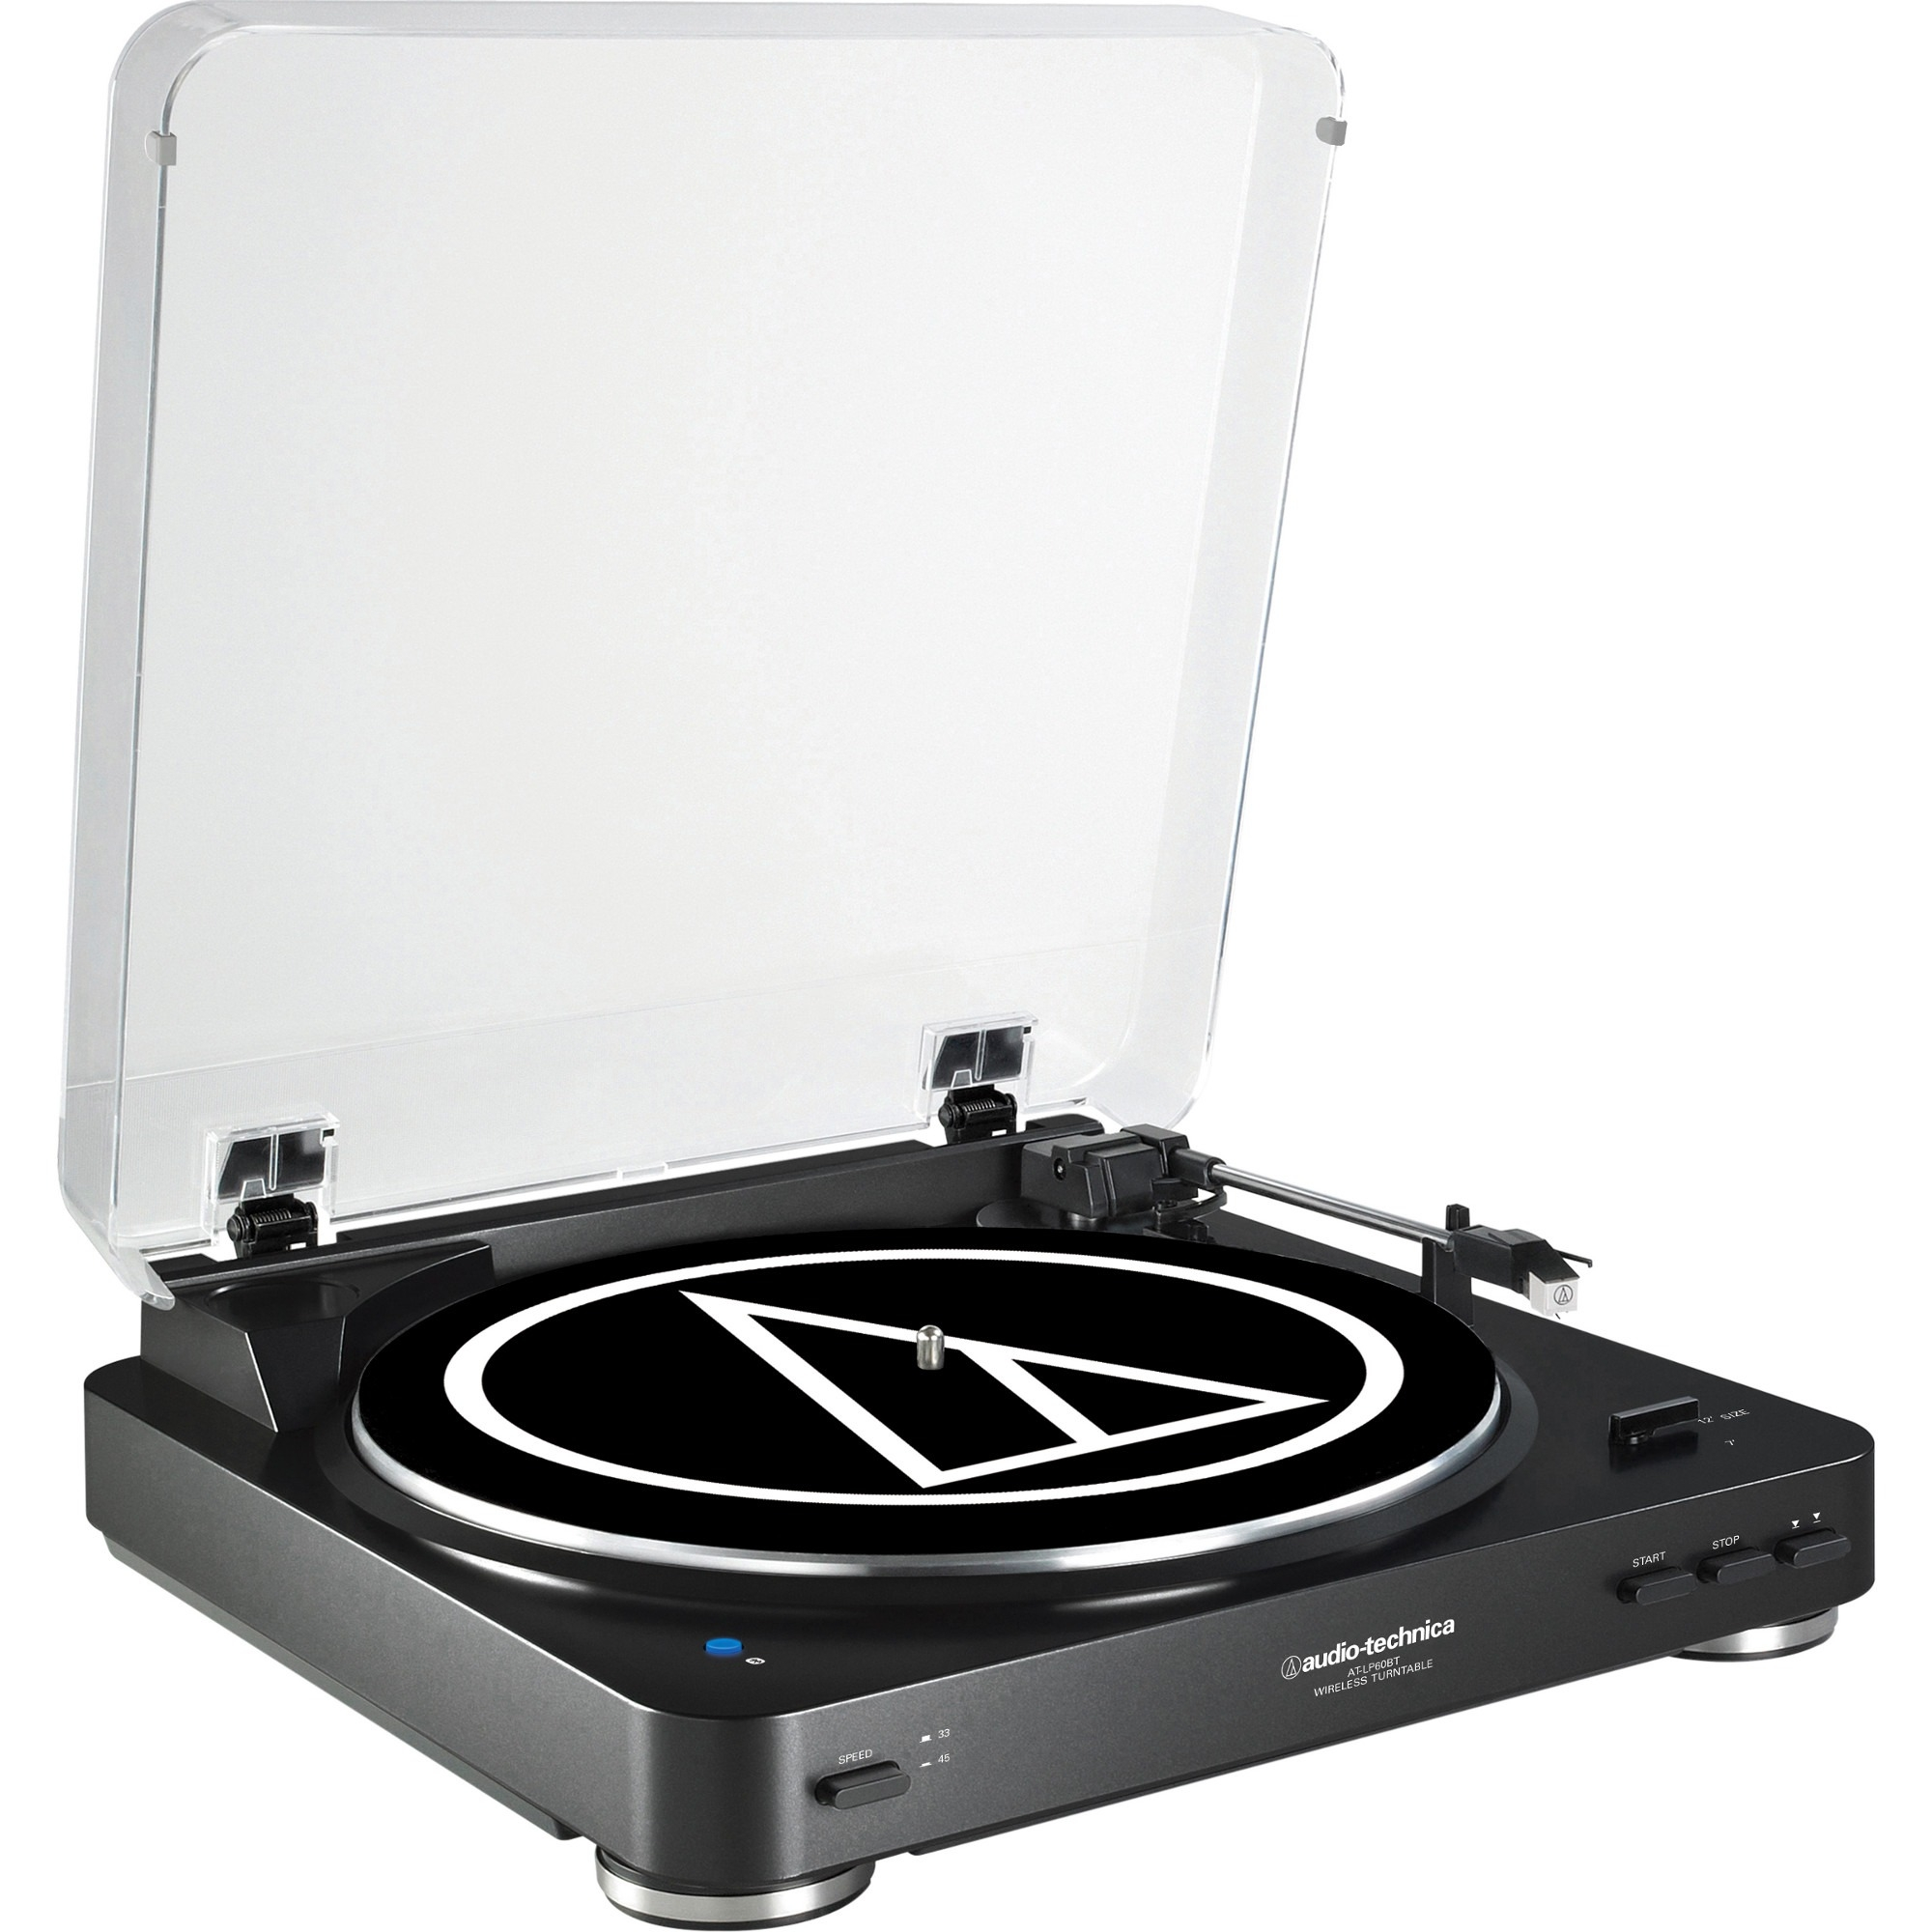 Audio-technica Fully Automatic Wireless Belt-drive Stereo Turntable - Belt Drive - Automatic - 33.33, 45 Rpm - Black (at-lp60bk-bt)